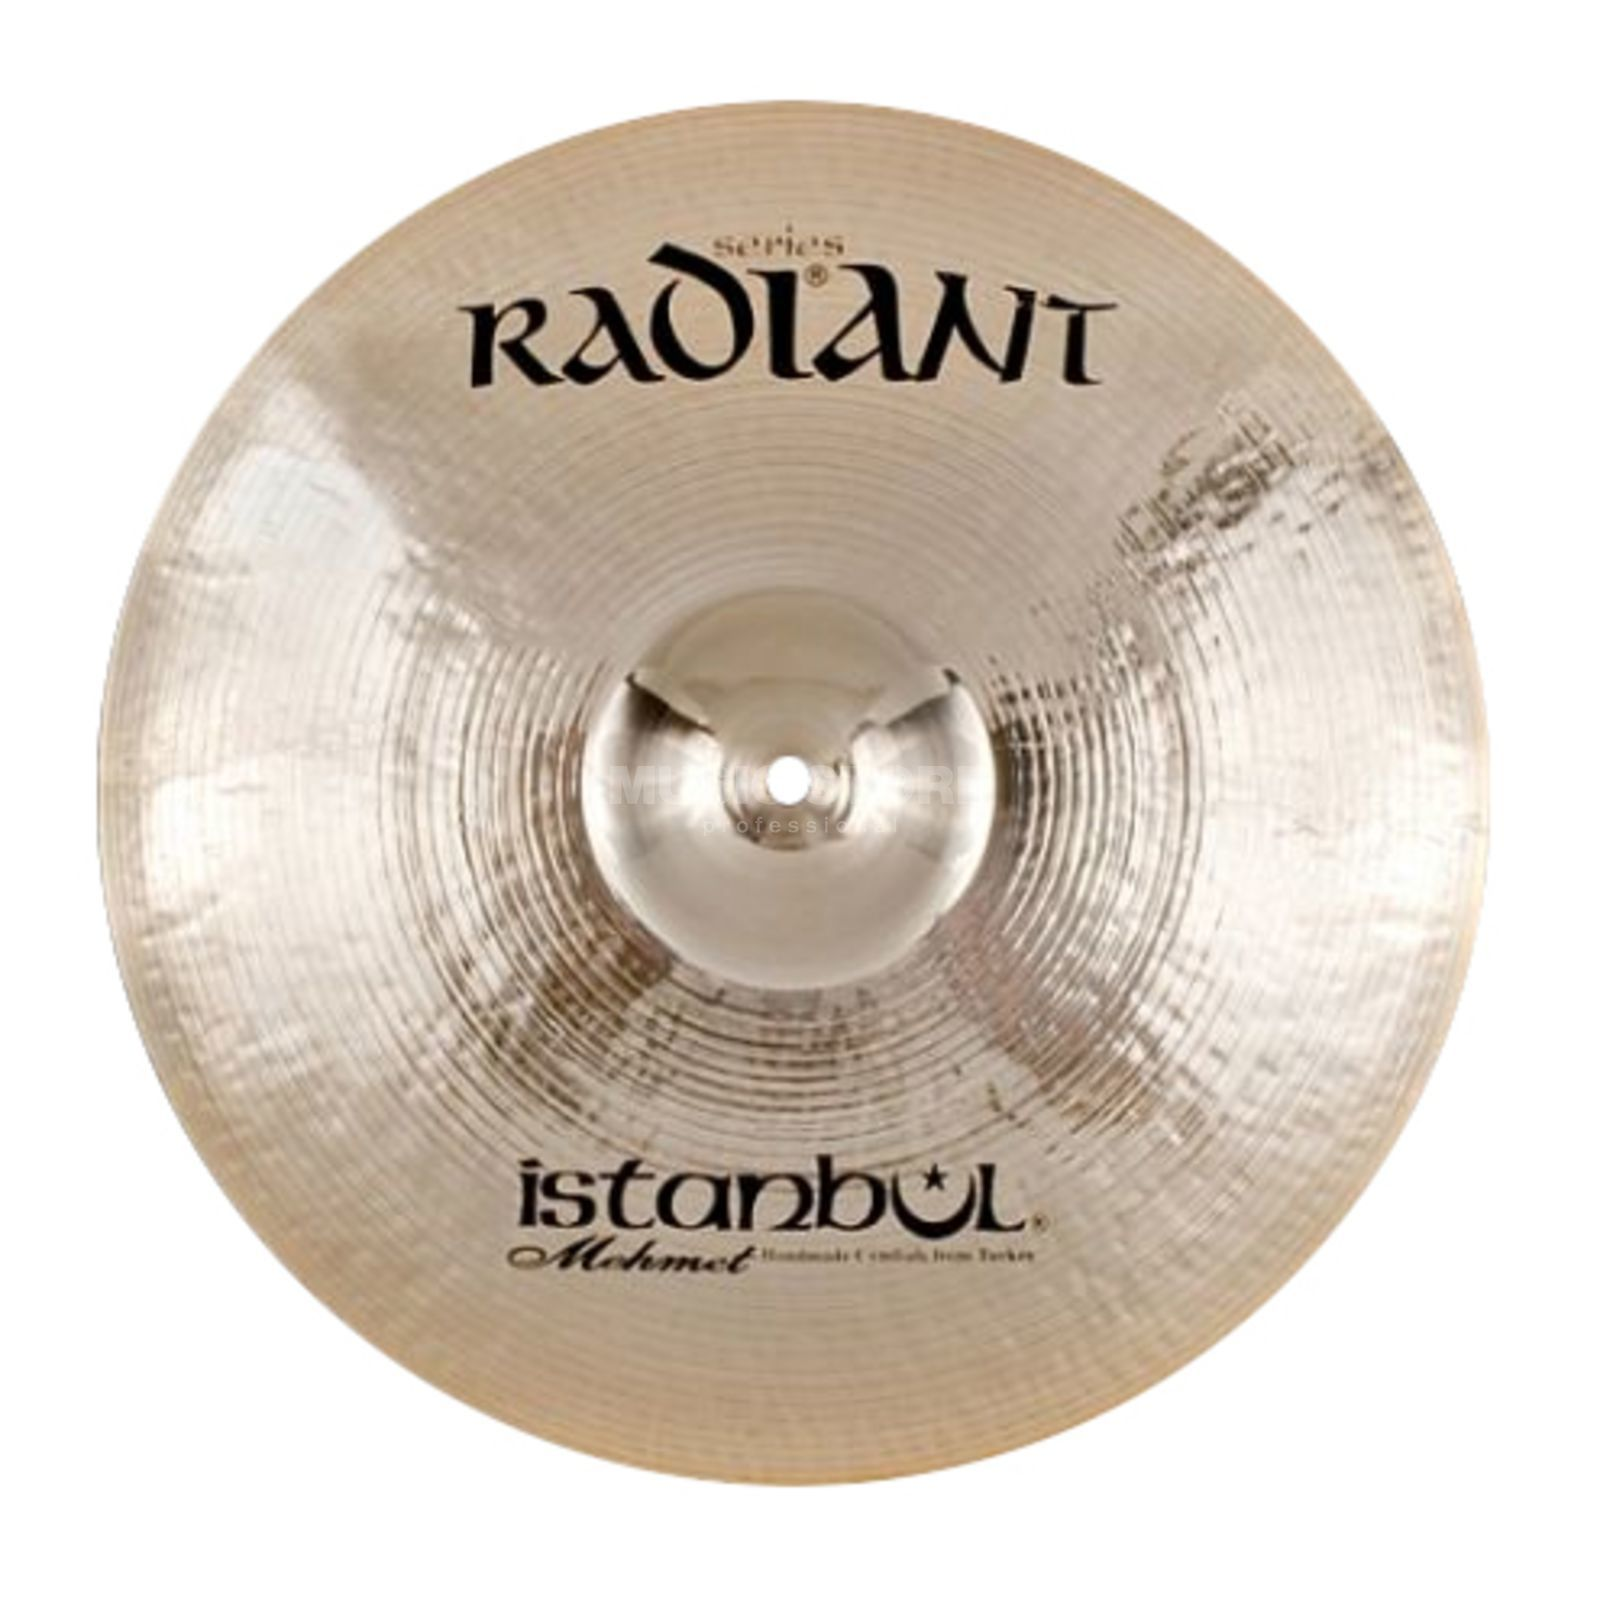 "Istanbul Radiant Medium Crash 16"", R-CM16 Produktbild"